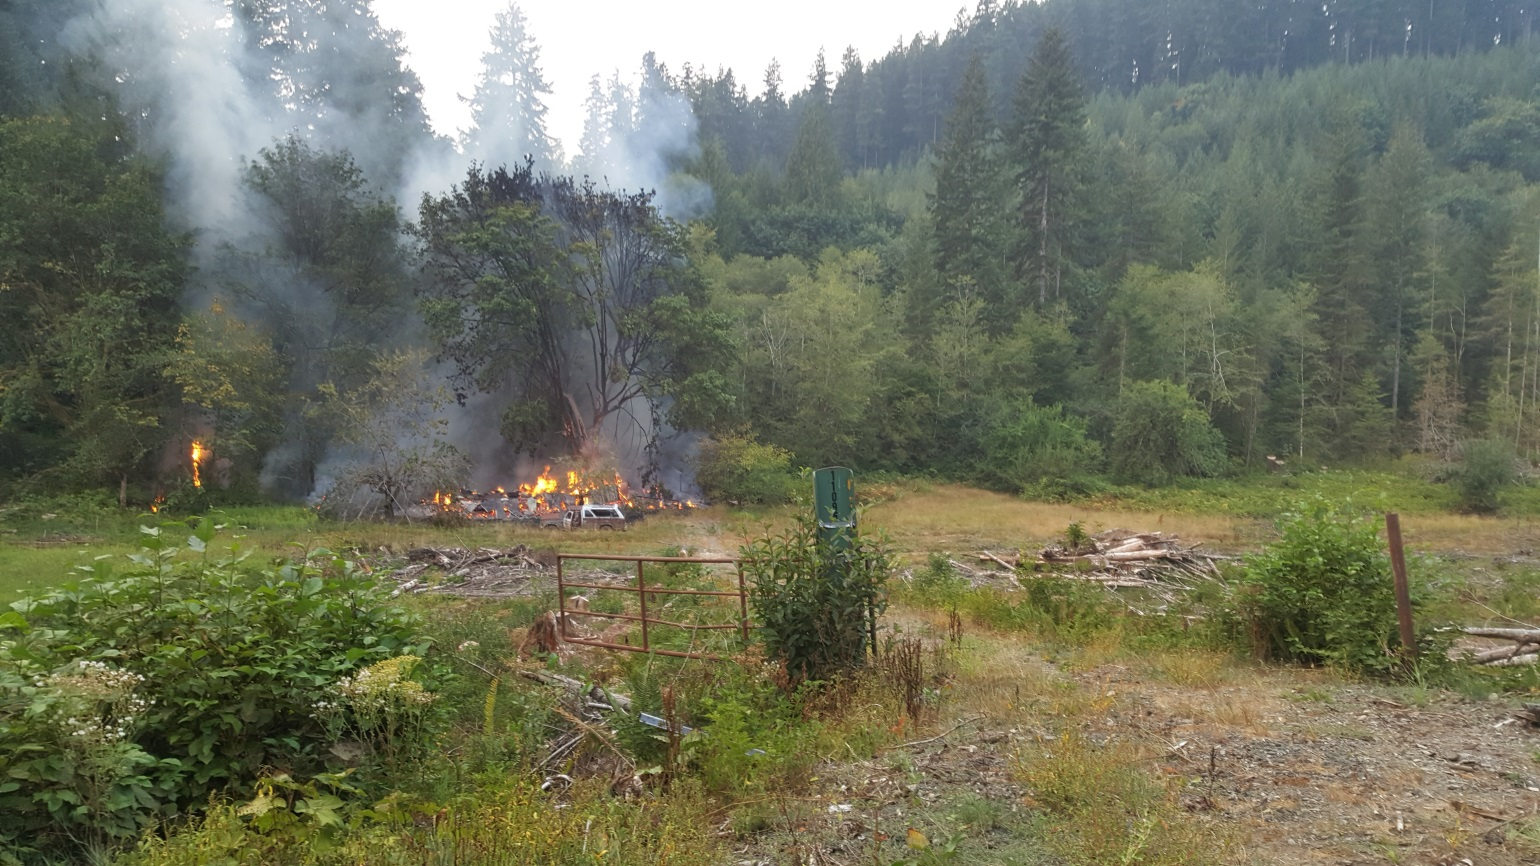 Three men were arrested in Douglas County following an investigation into a structure fire in an unoccupied building in a remote area of the North Fork Smith River on Sep. 2, 2017. (Oregon State Police photo)<p></p>